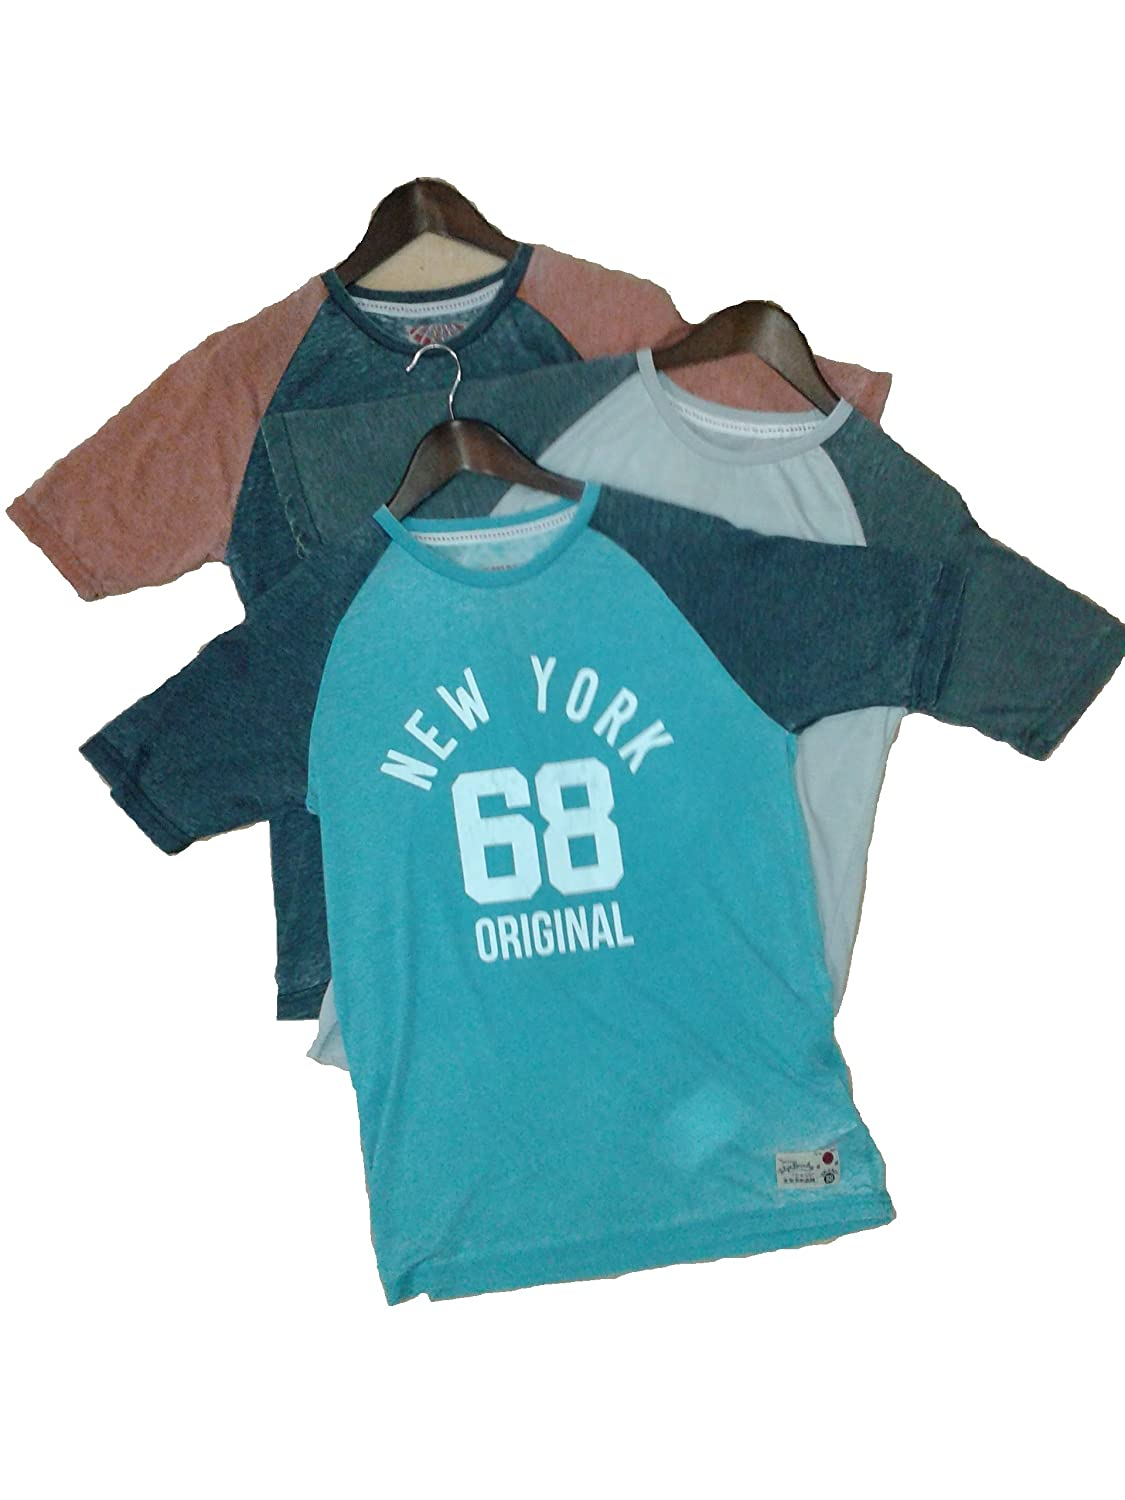 Tokyo Laundry Men Raglan Sleeve Burn Out Tshirt Tee Top New York Collegiate Varsity style Print. Style 1C4403